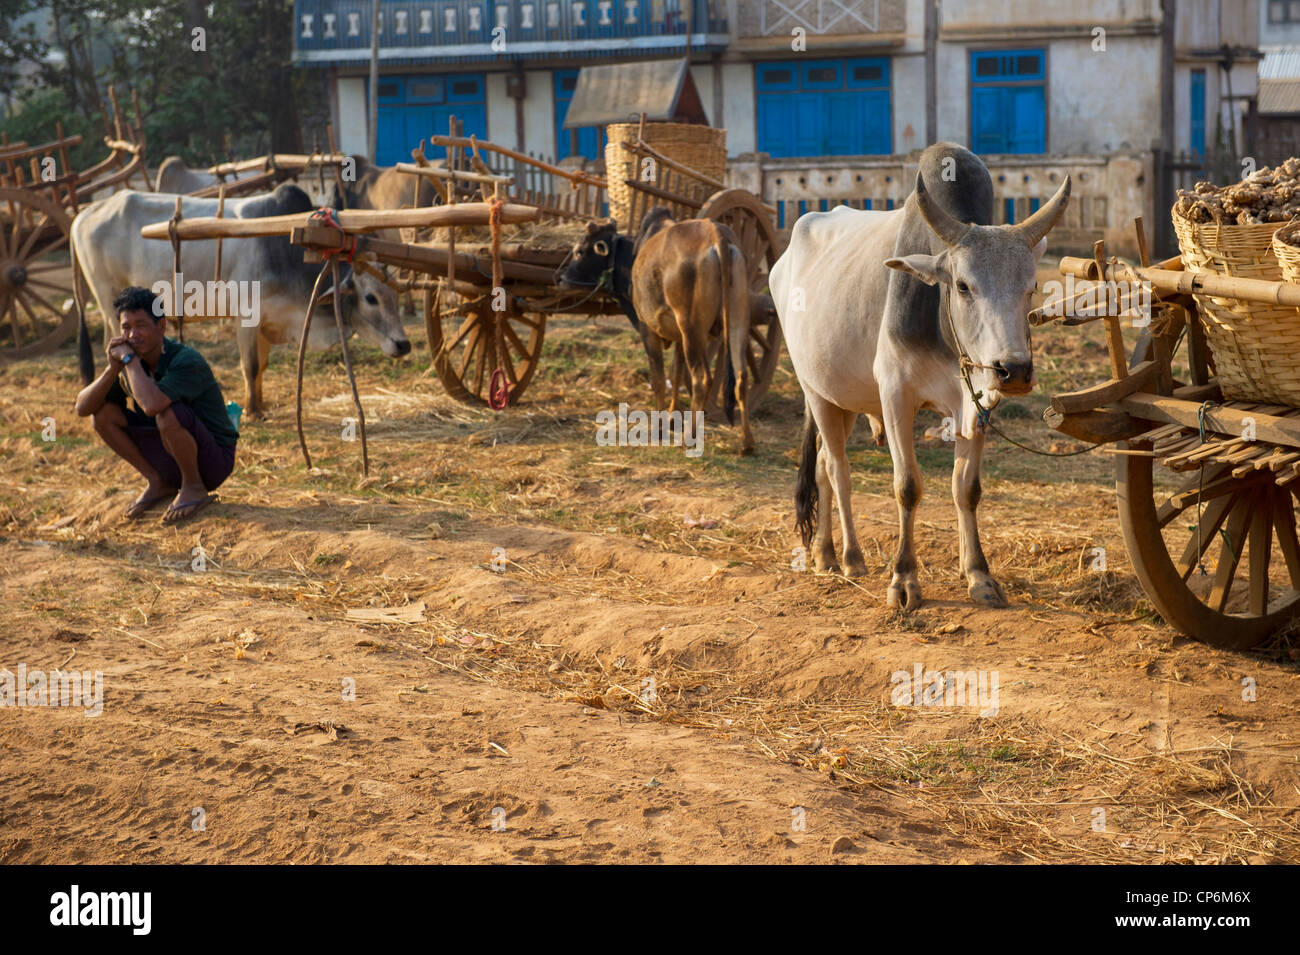 Ox carts in Central Market,  Heho, Myanmar - Stock Image